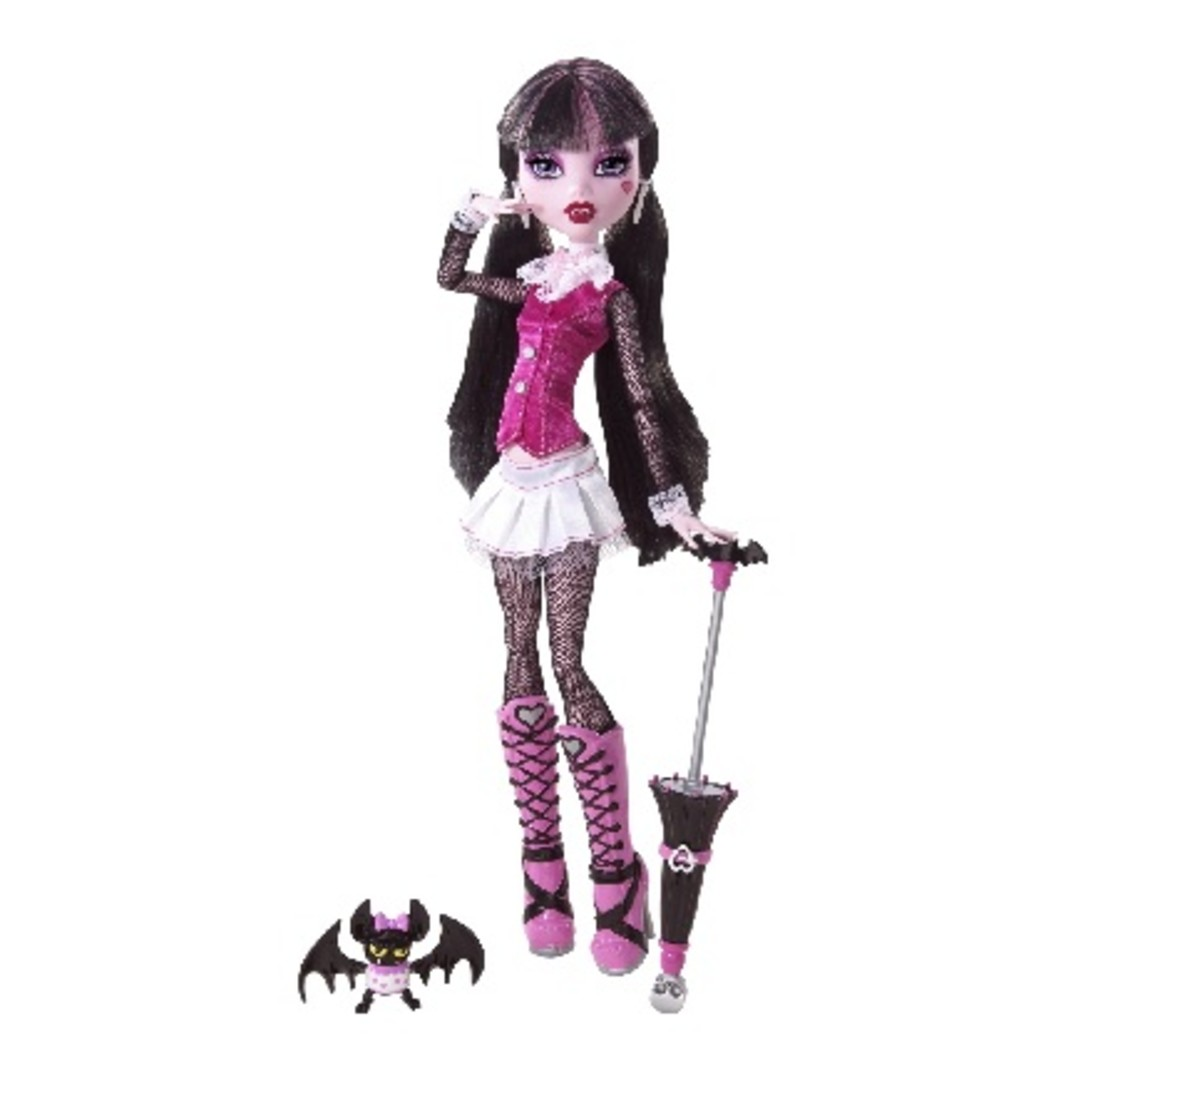 Monster High Draculaura Dolls - The Complete List Of Dolls